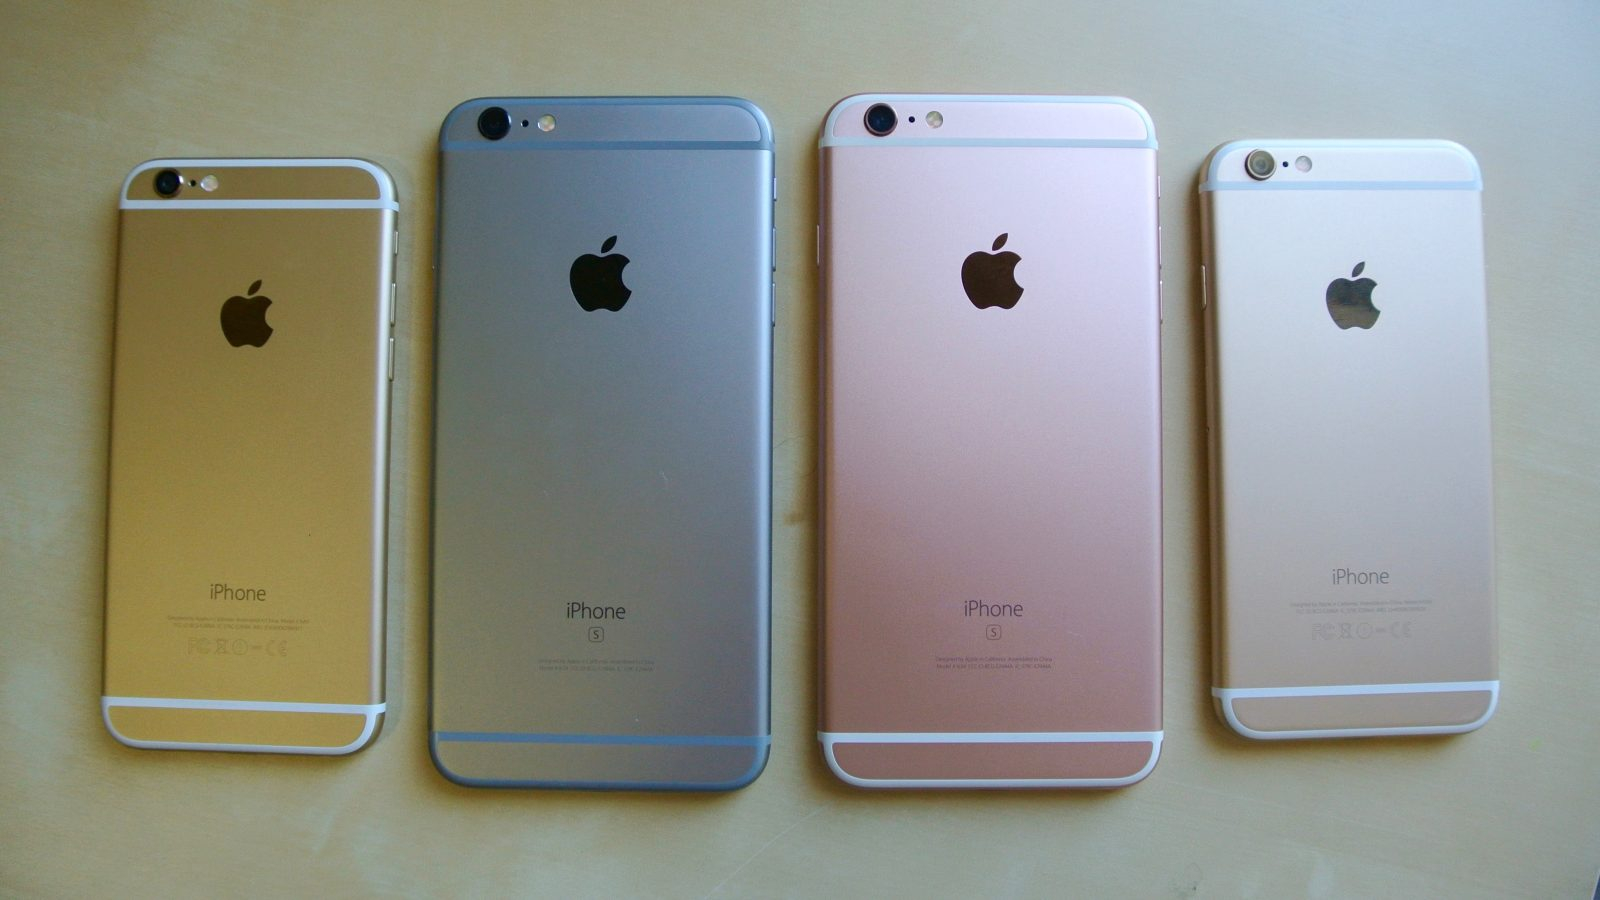 iphone 6s plus hands on first impressions photos